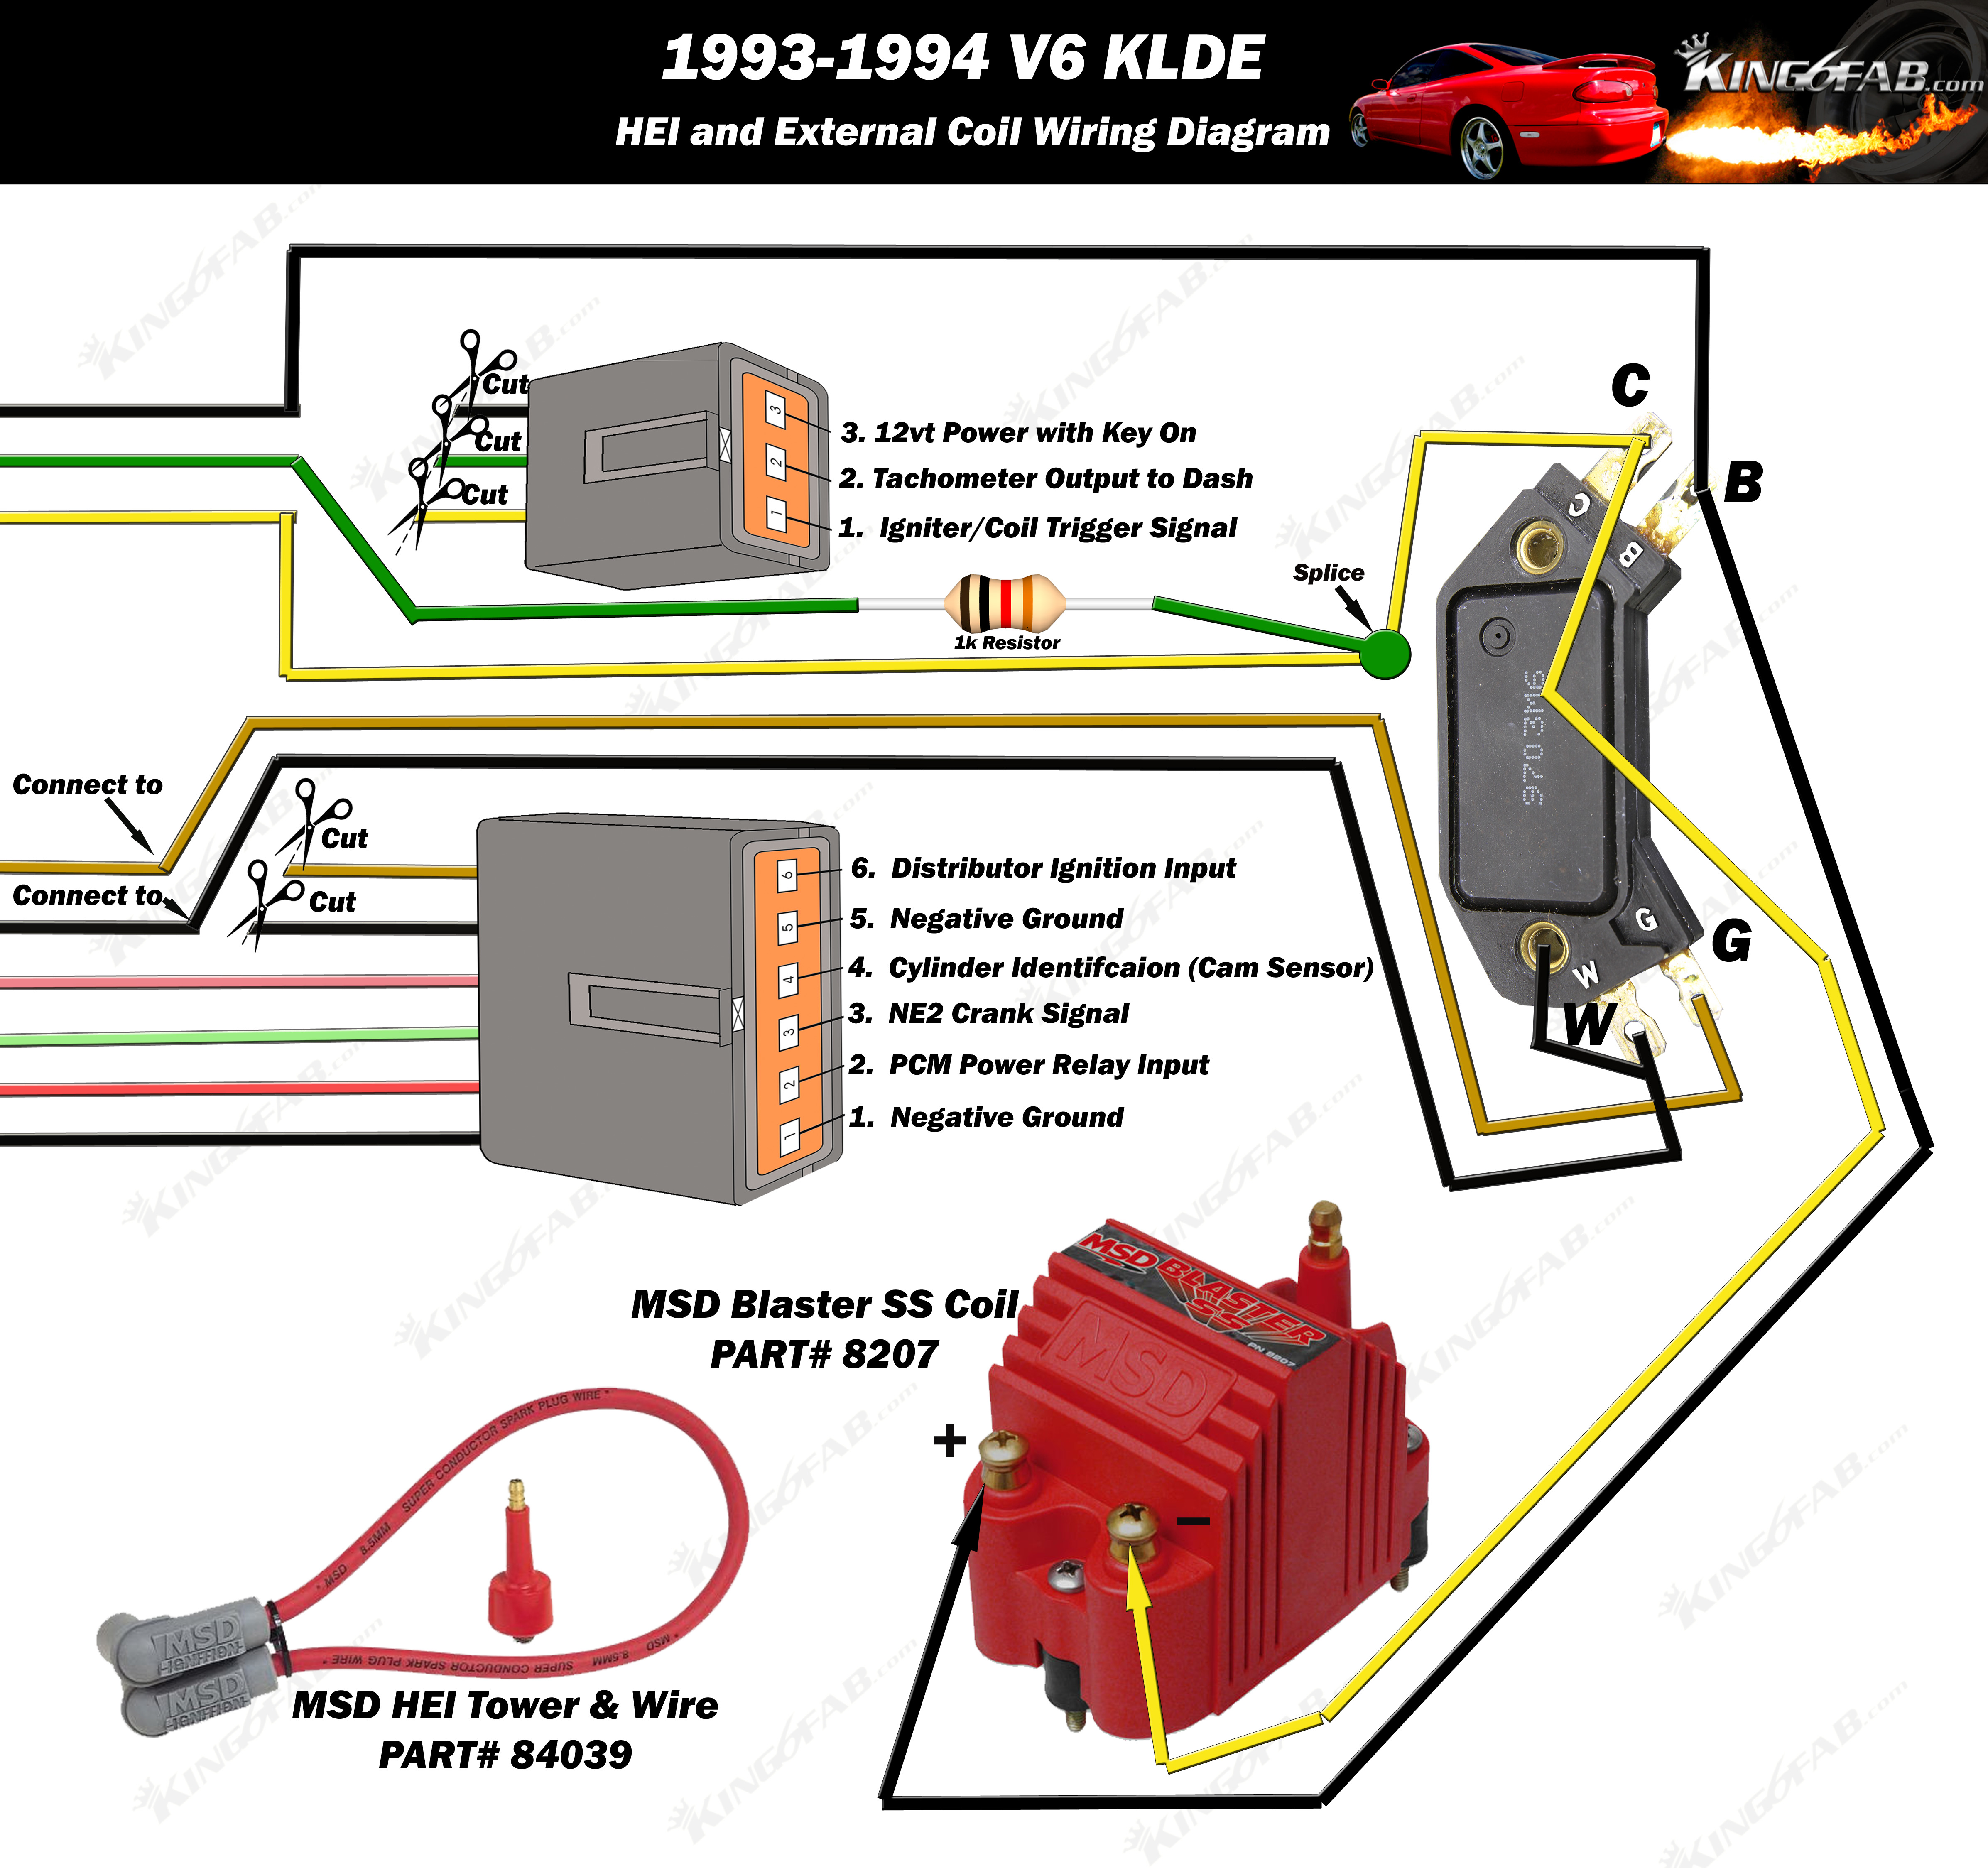 [SCHEMATICS_4CA]  HEI Wiring Diagrams – Welcome to King6fab | Mazda Mx6 Wiring Diagram |  | King6fab